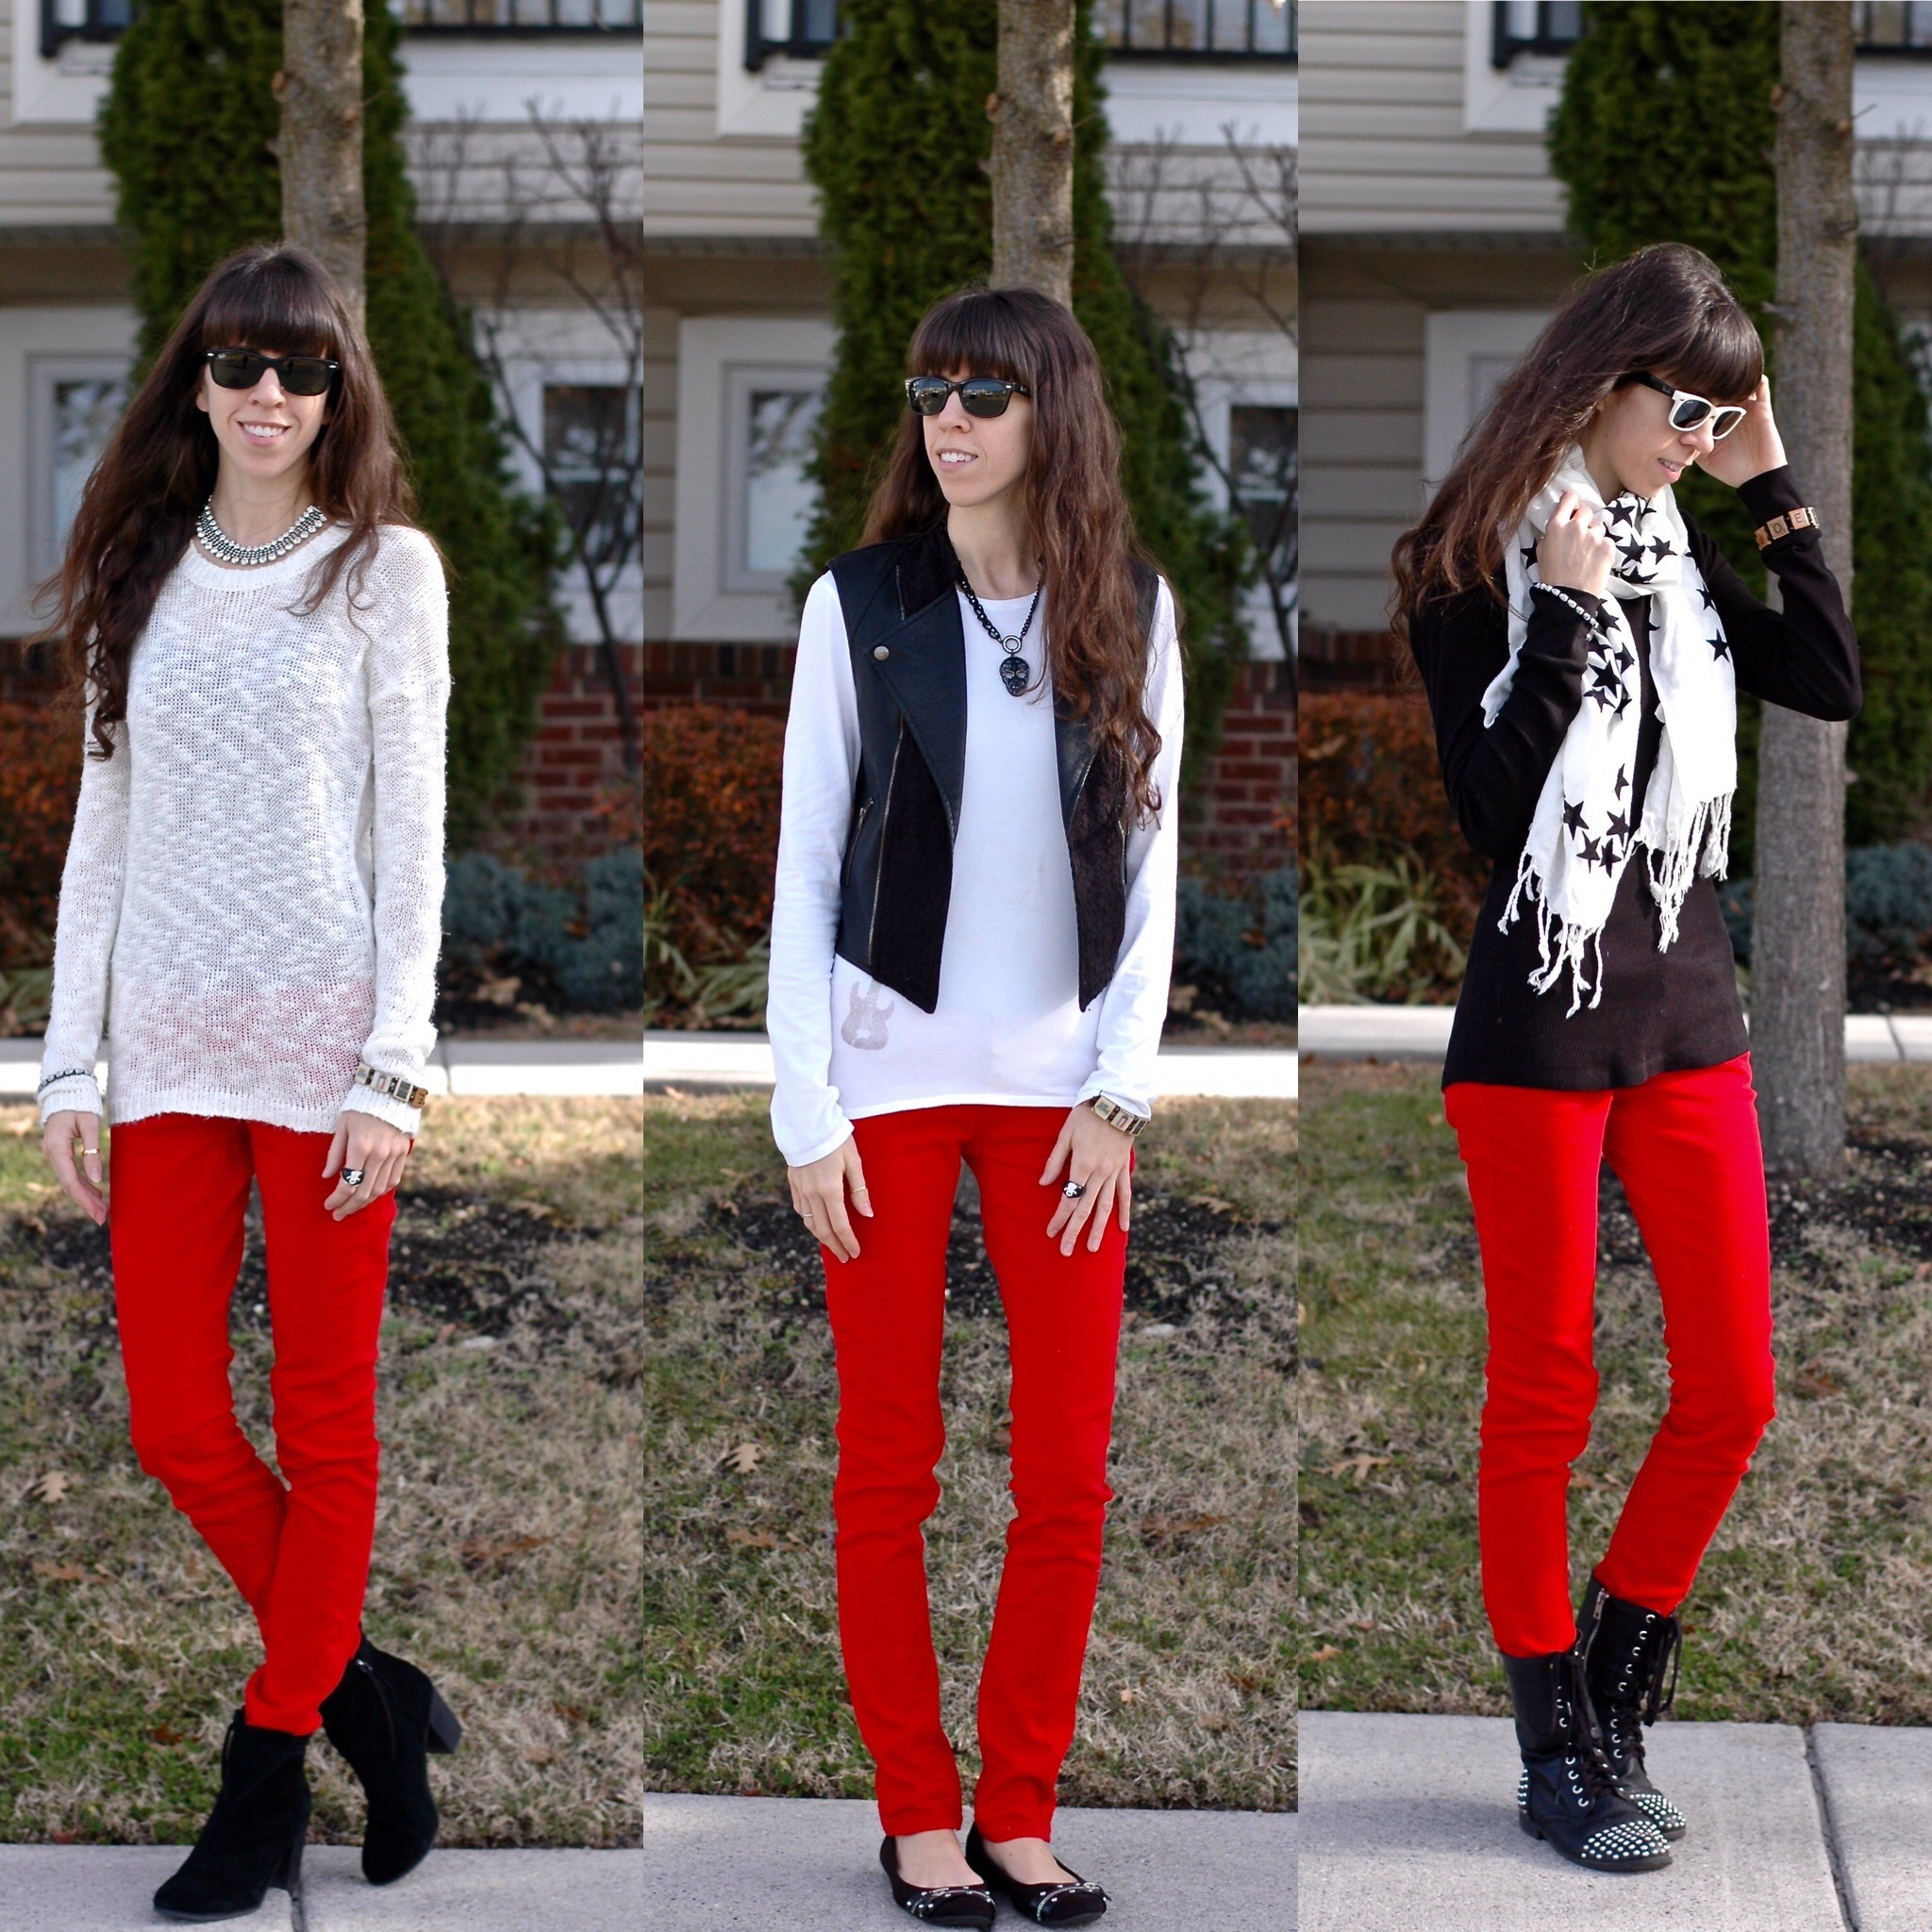 3 Ways To Wear Red Jeans